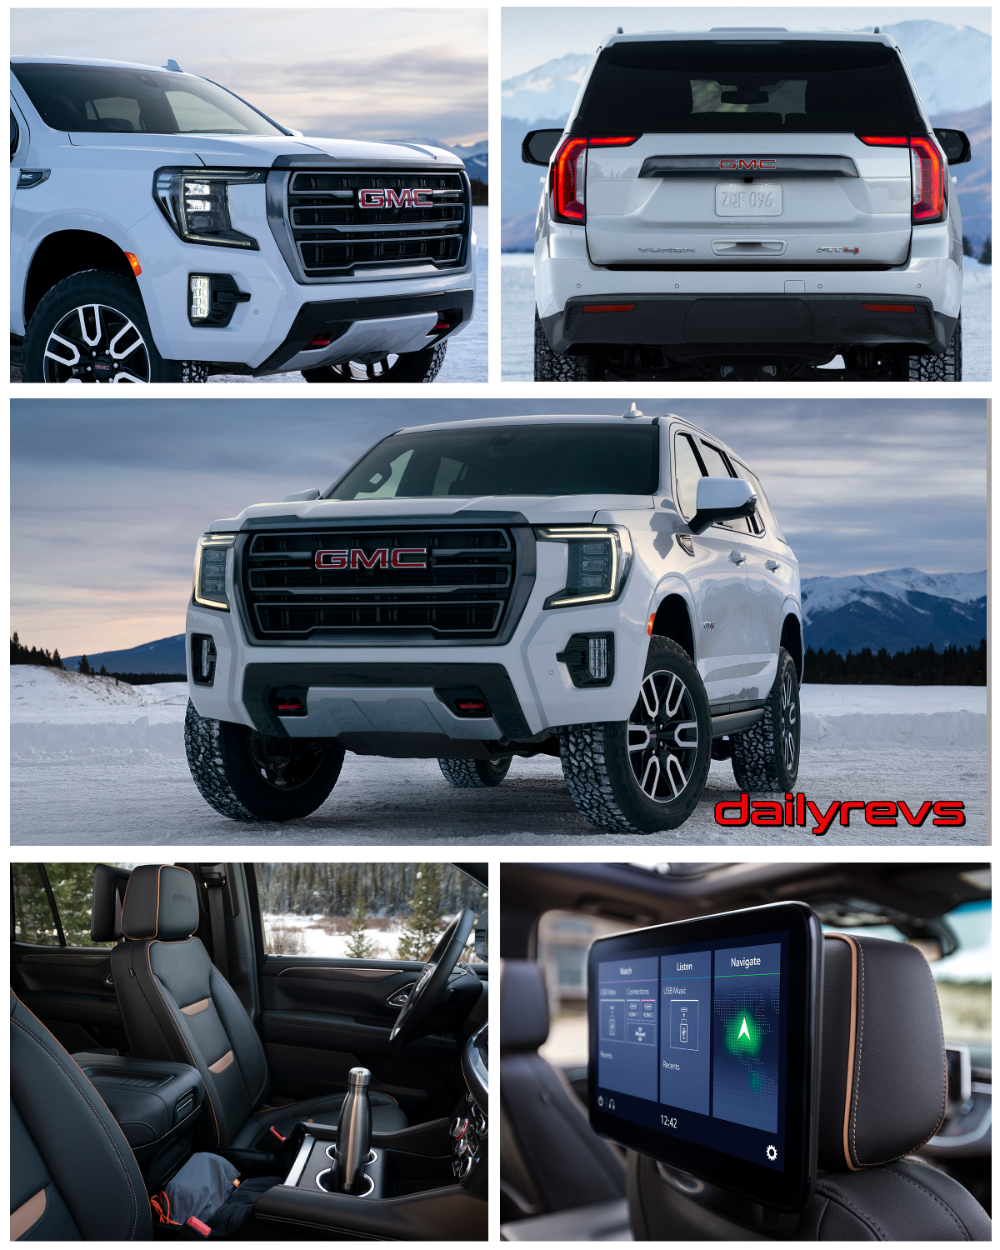 2021 Gmc Yukon At4 Dailyrevs Com In 2020 Gmc Yukon Gmc